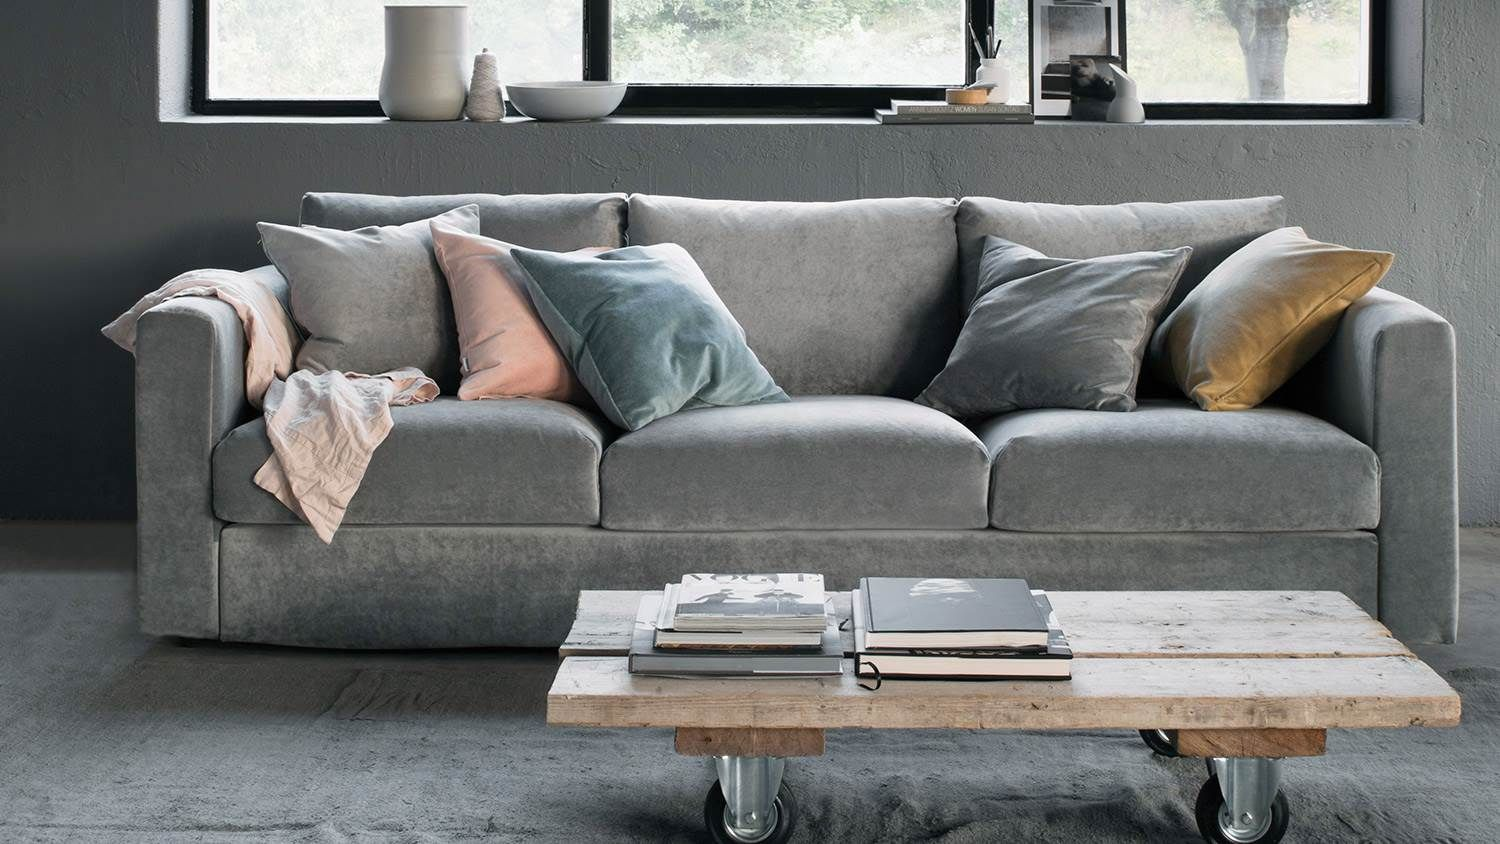 Muted Cozy Color Palette Industrial Coffee Table Ikea Sofa Covers Ikea Couch Ikea Sofa